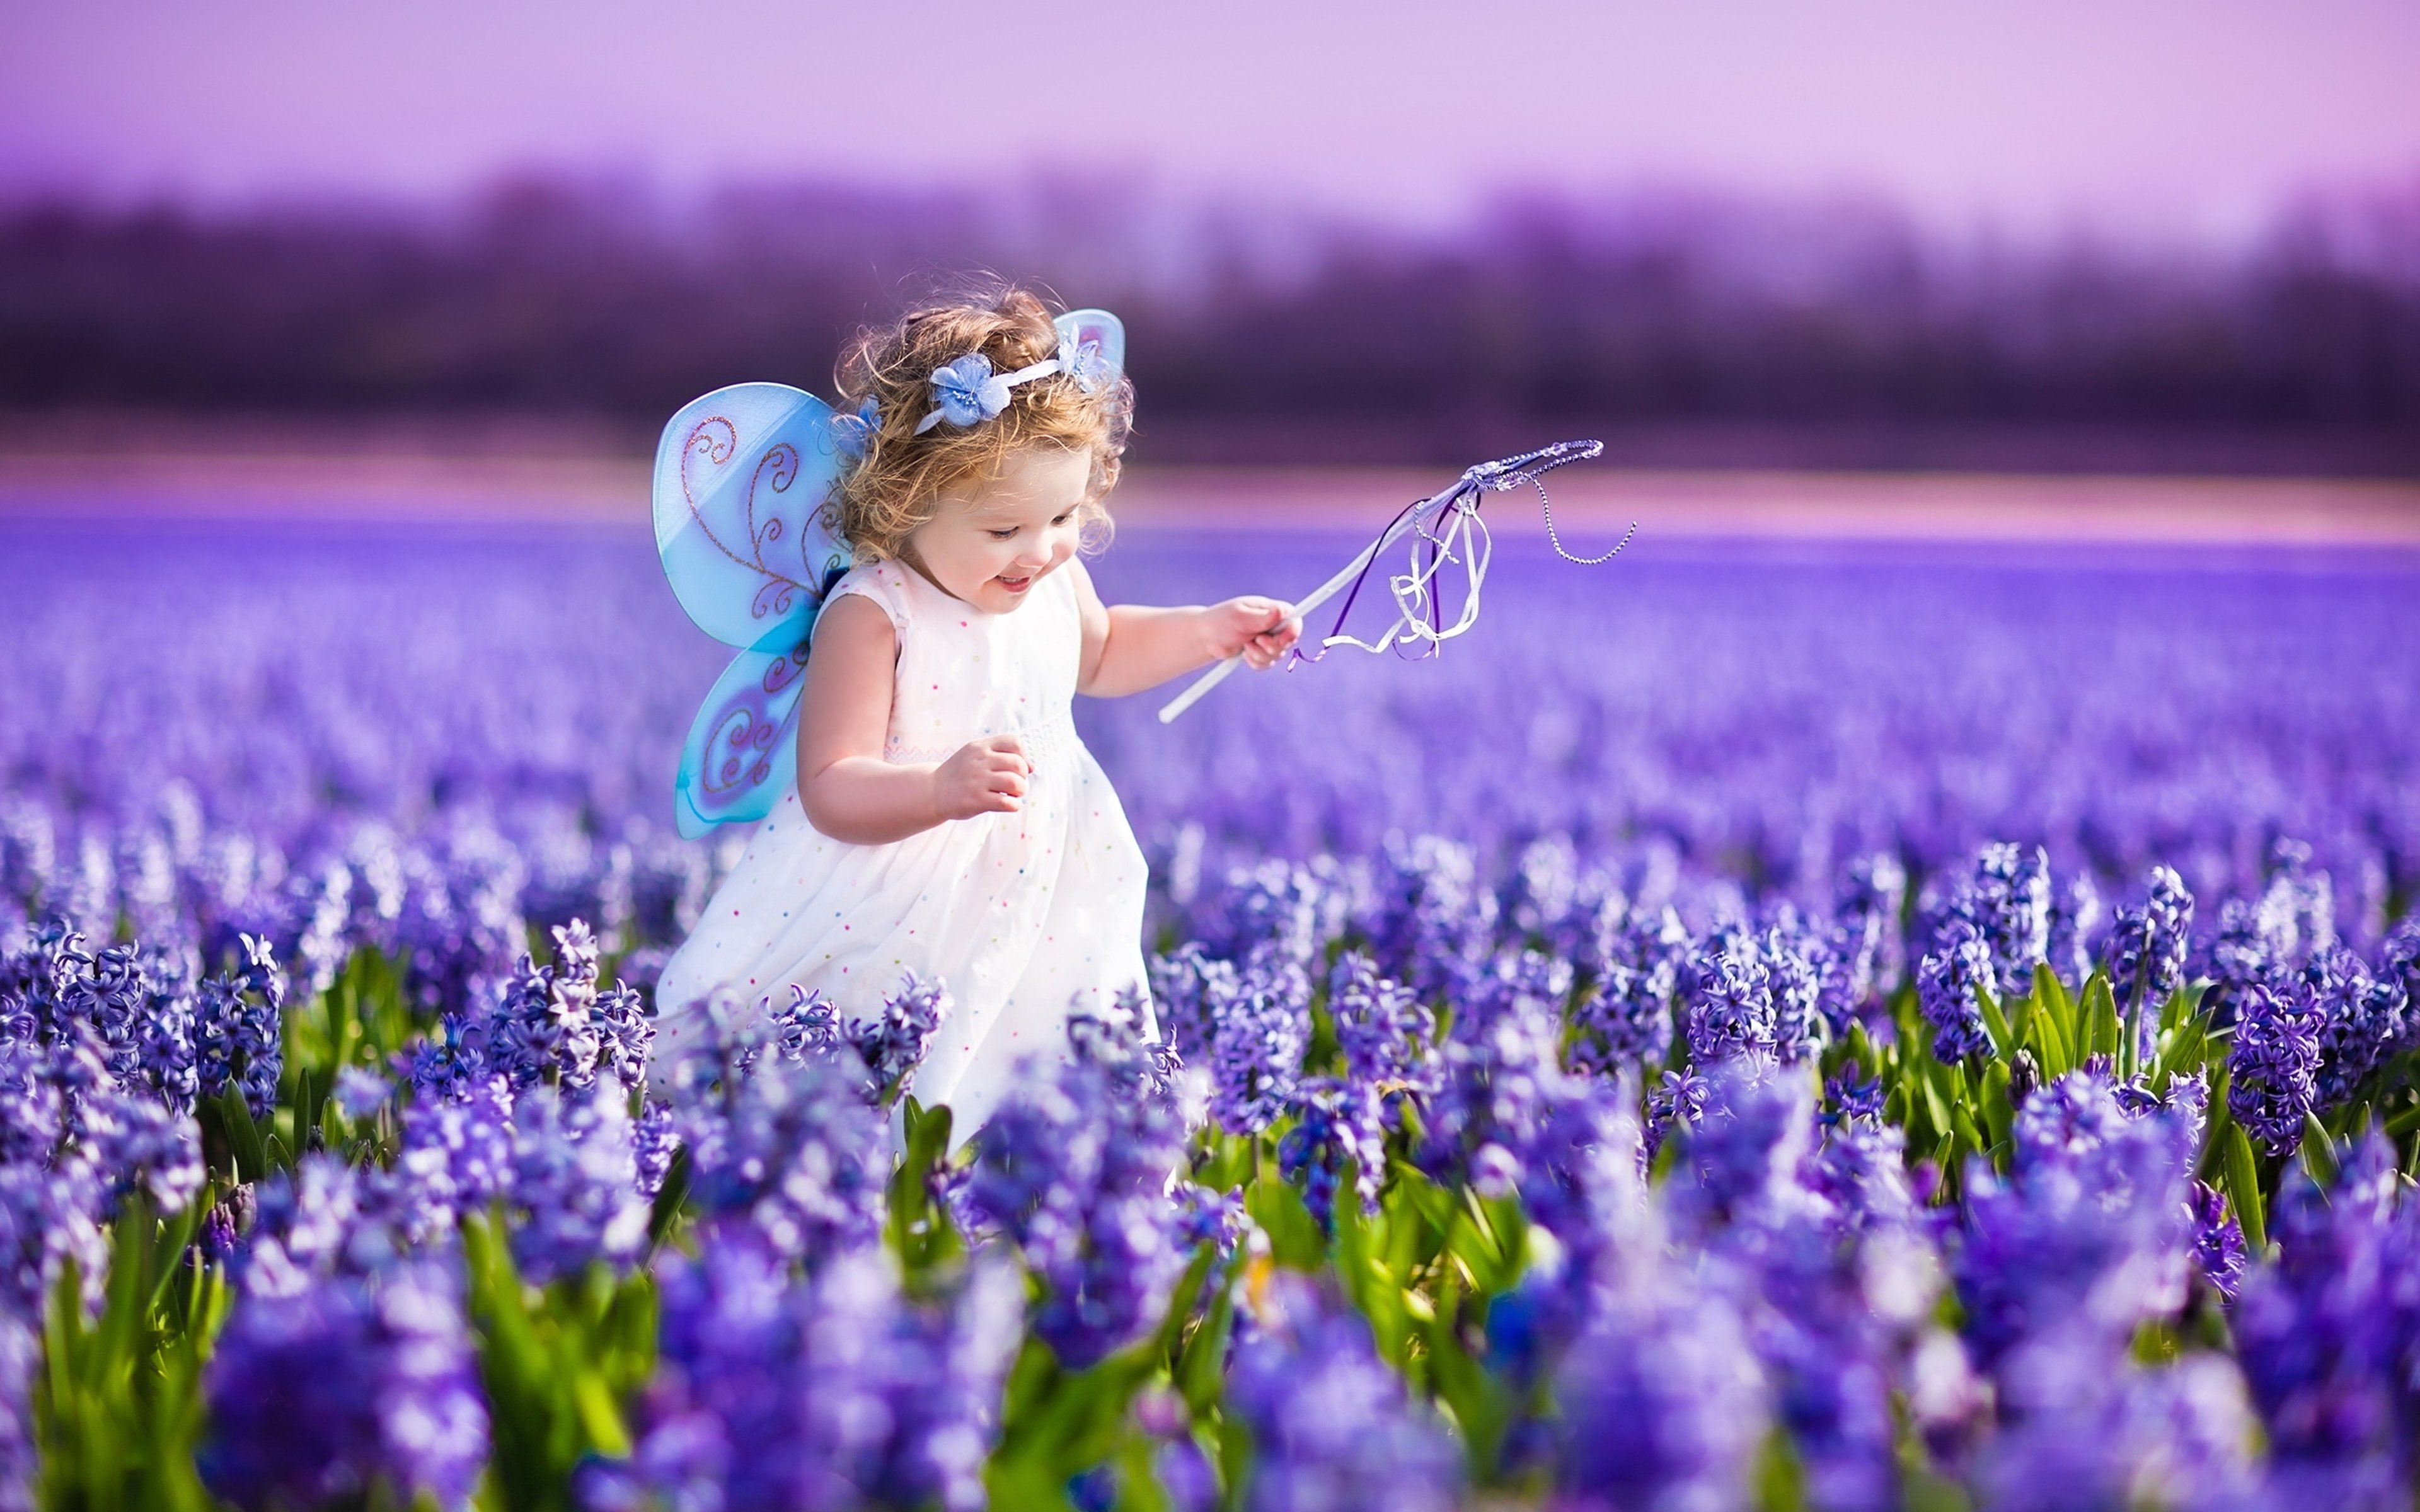 flowers spring kids children childhood purple butterfly princess landscapes nature earth beauty fun joy happy fields girls wallpaper 3840x2400 649031 - Spring Pictures For Children